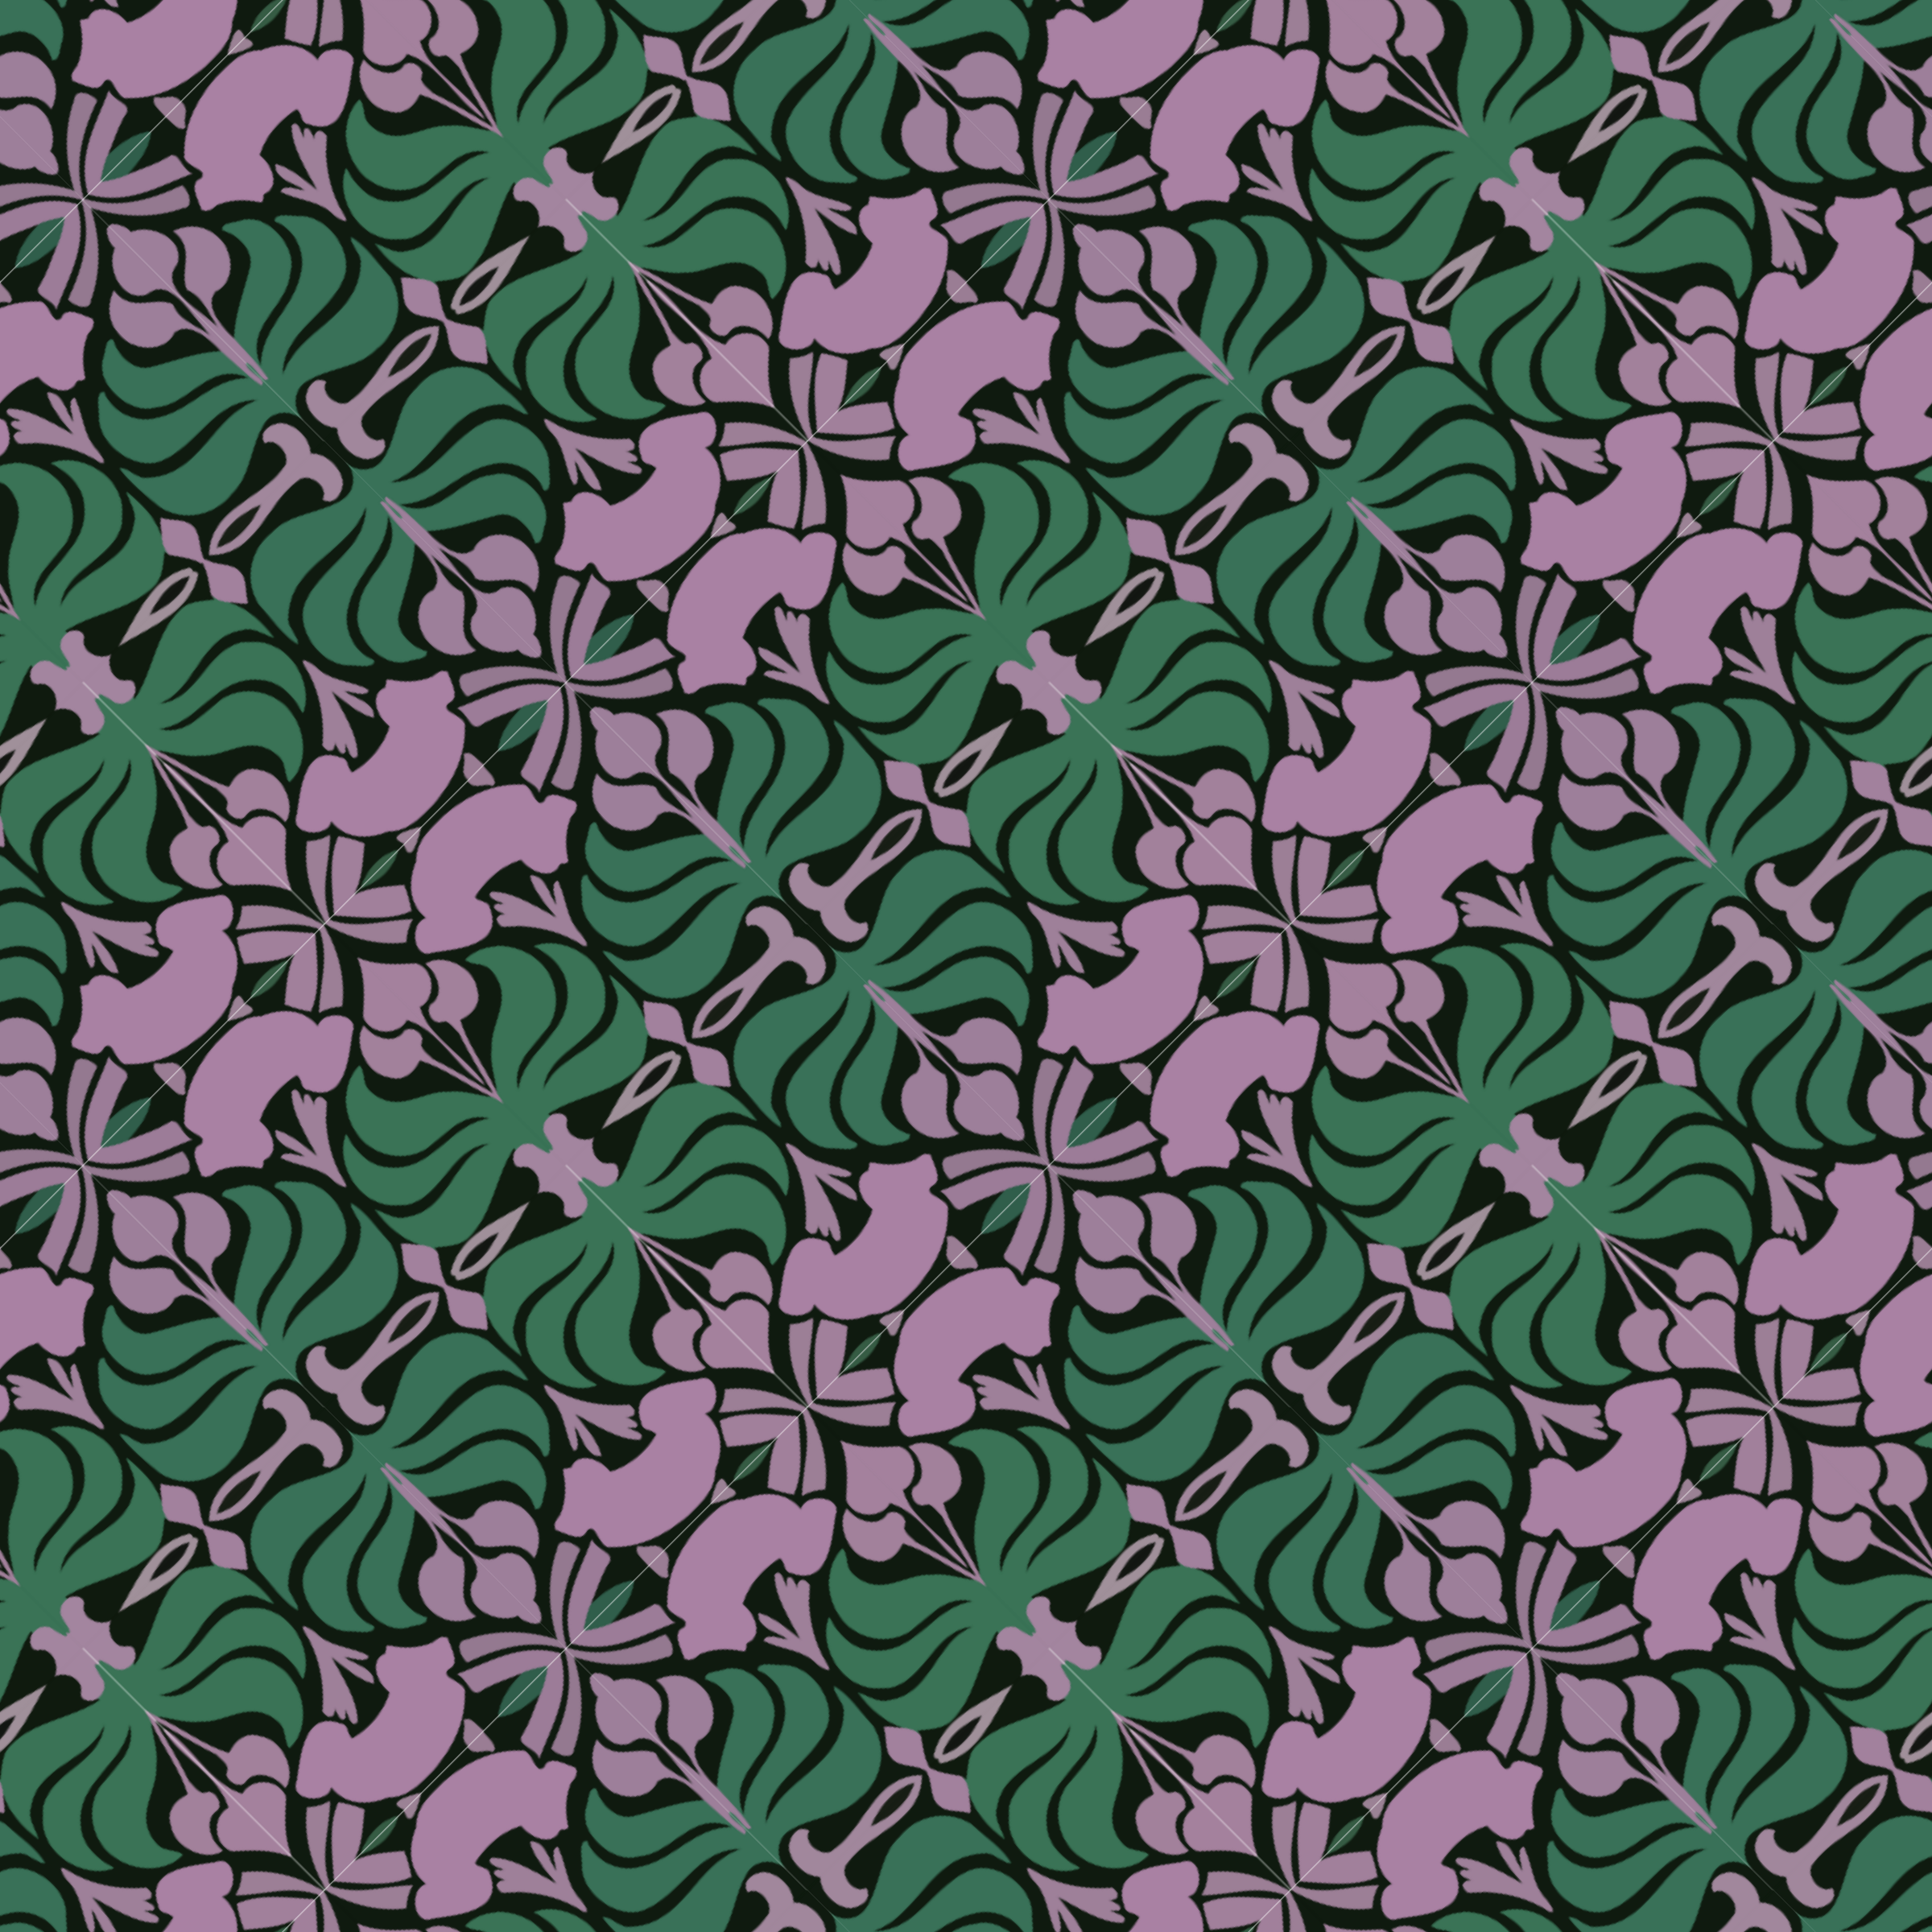 Background pattern 167 (colour 4) by Firkin